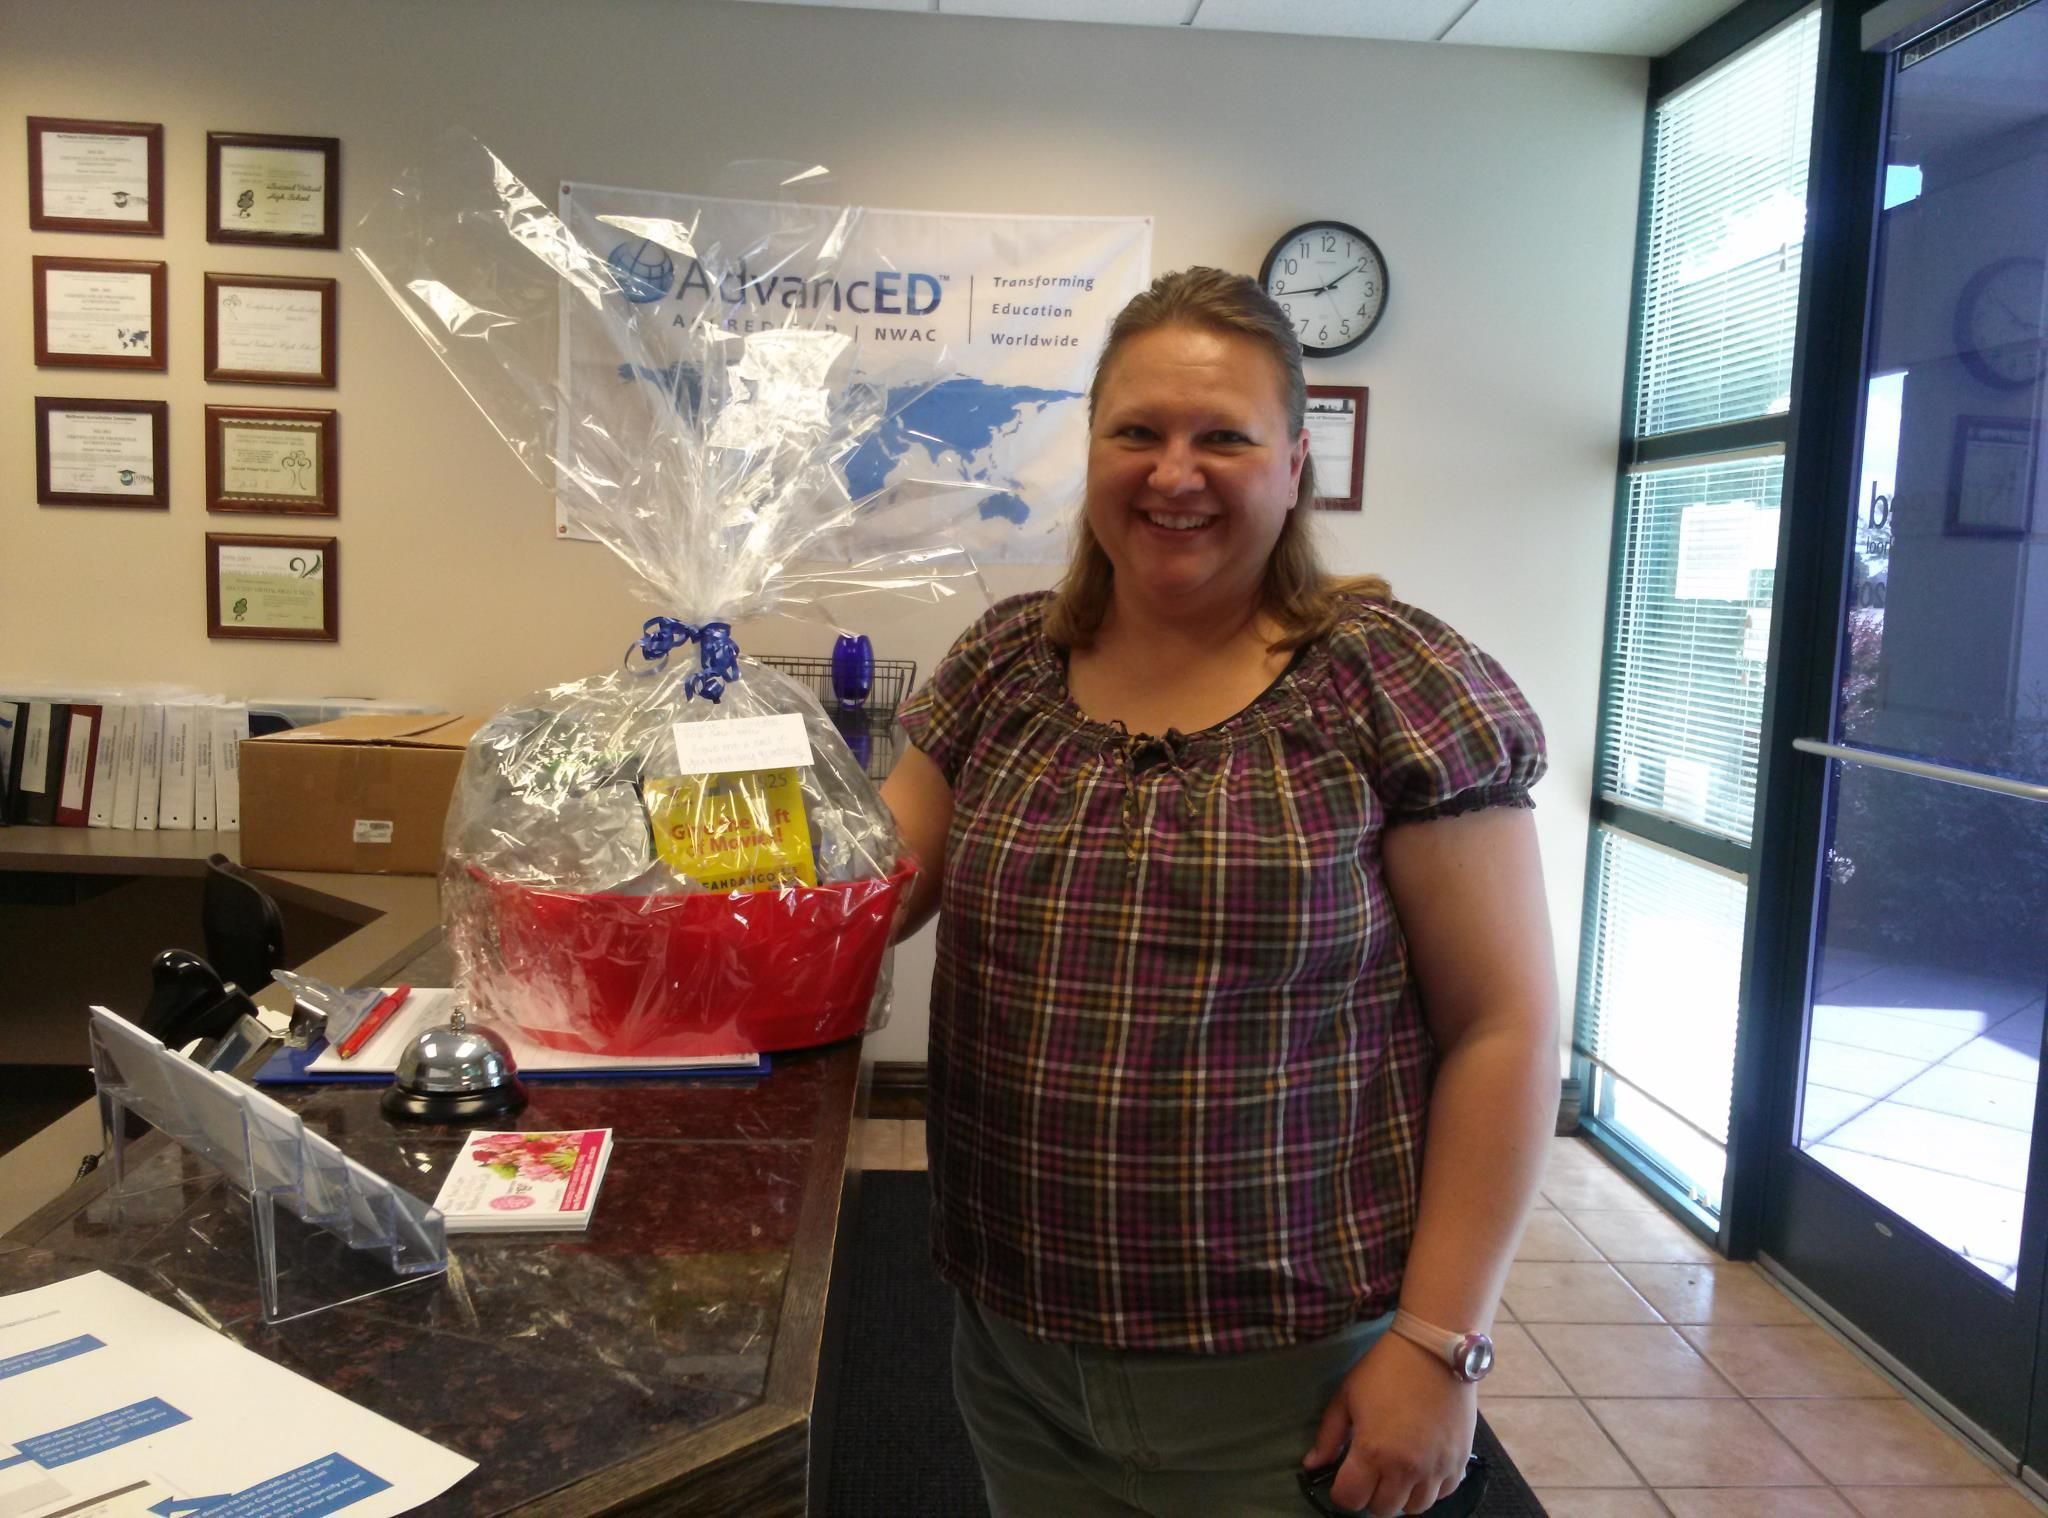 Congratulations Laurie, winner of our Movie Gift Basket at the Boys & Girls Club's Free Community Day!